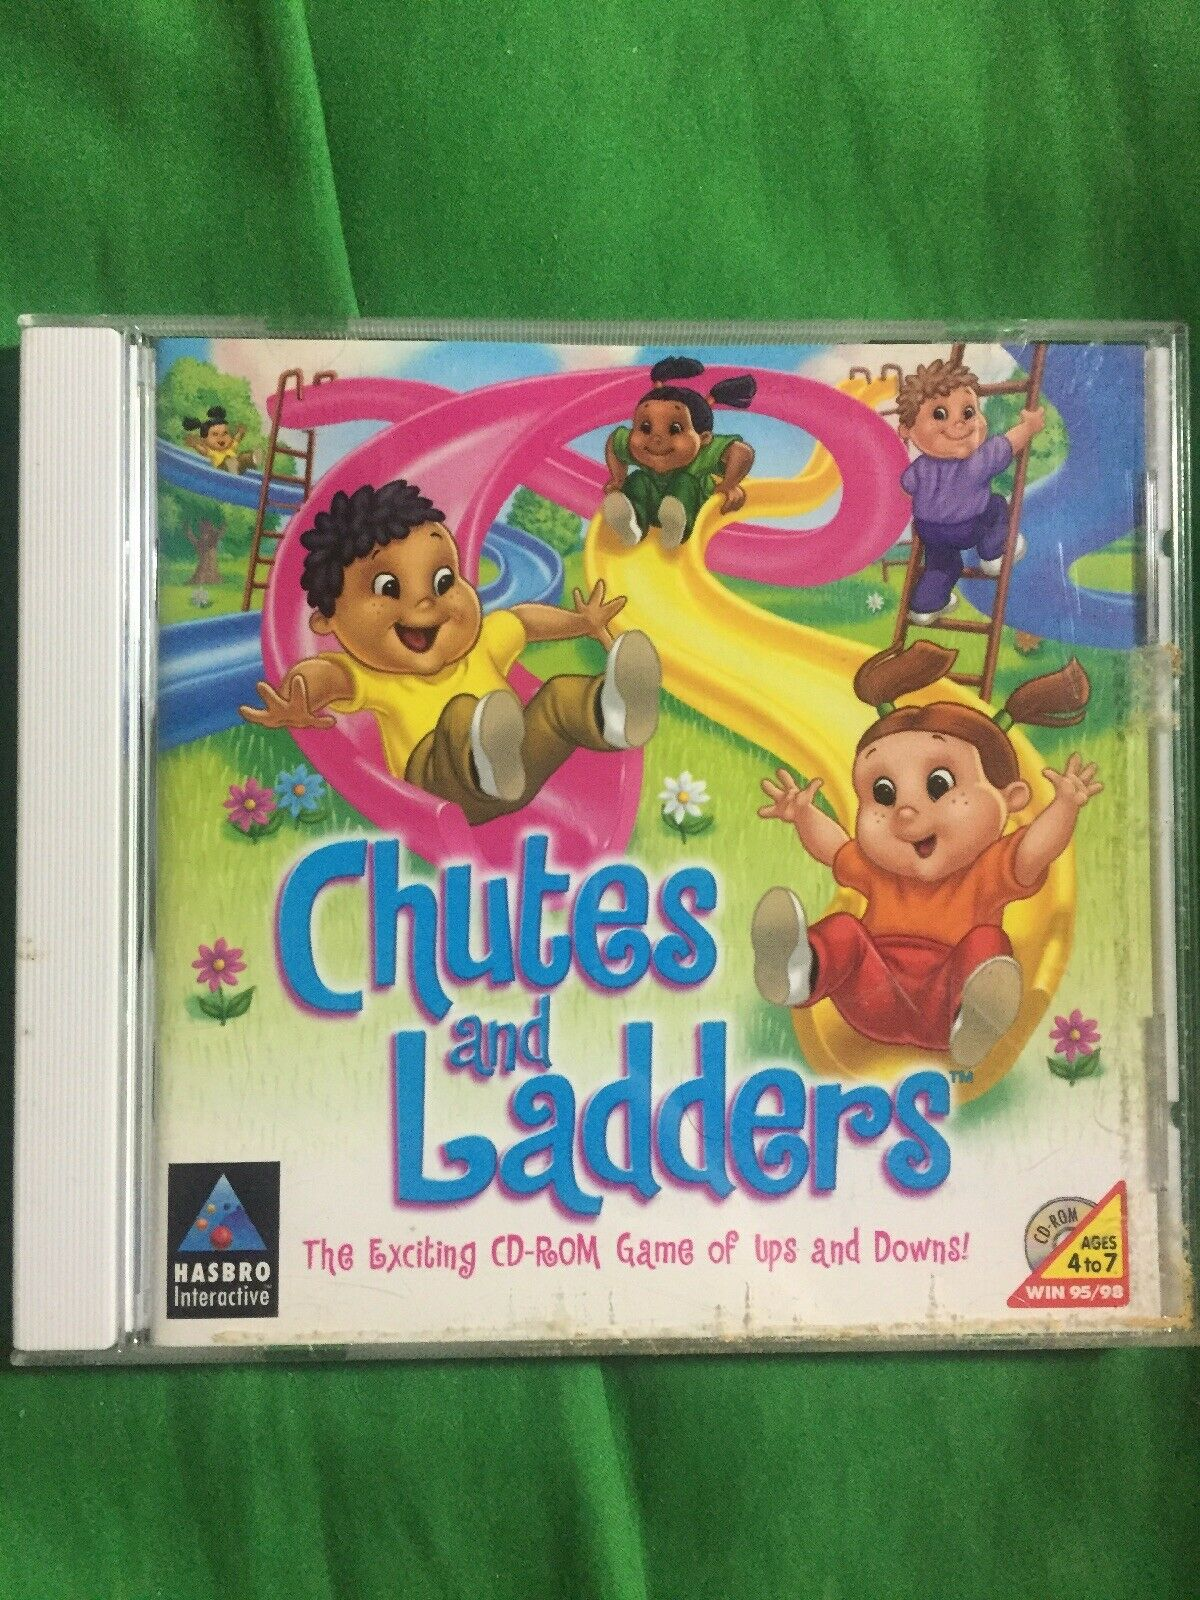 Chutes And Ladders Jewel Case Pc 1999 For Sale Online Ebay Also don't forget to follow me on other socials. chutes and ladders jewel case pc 1999